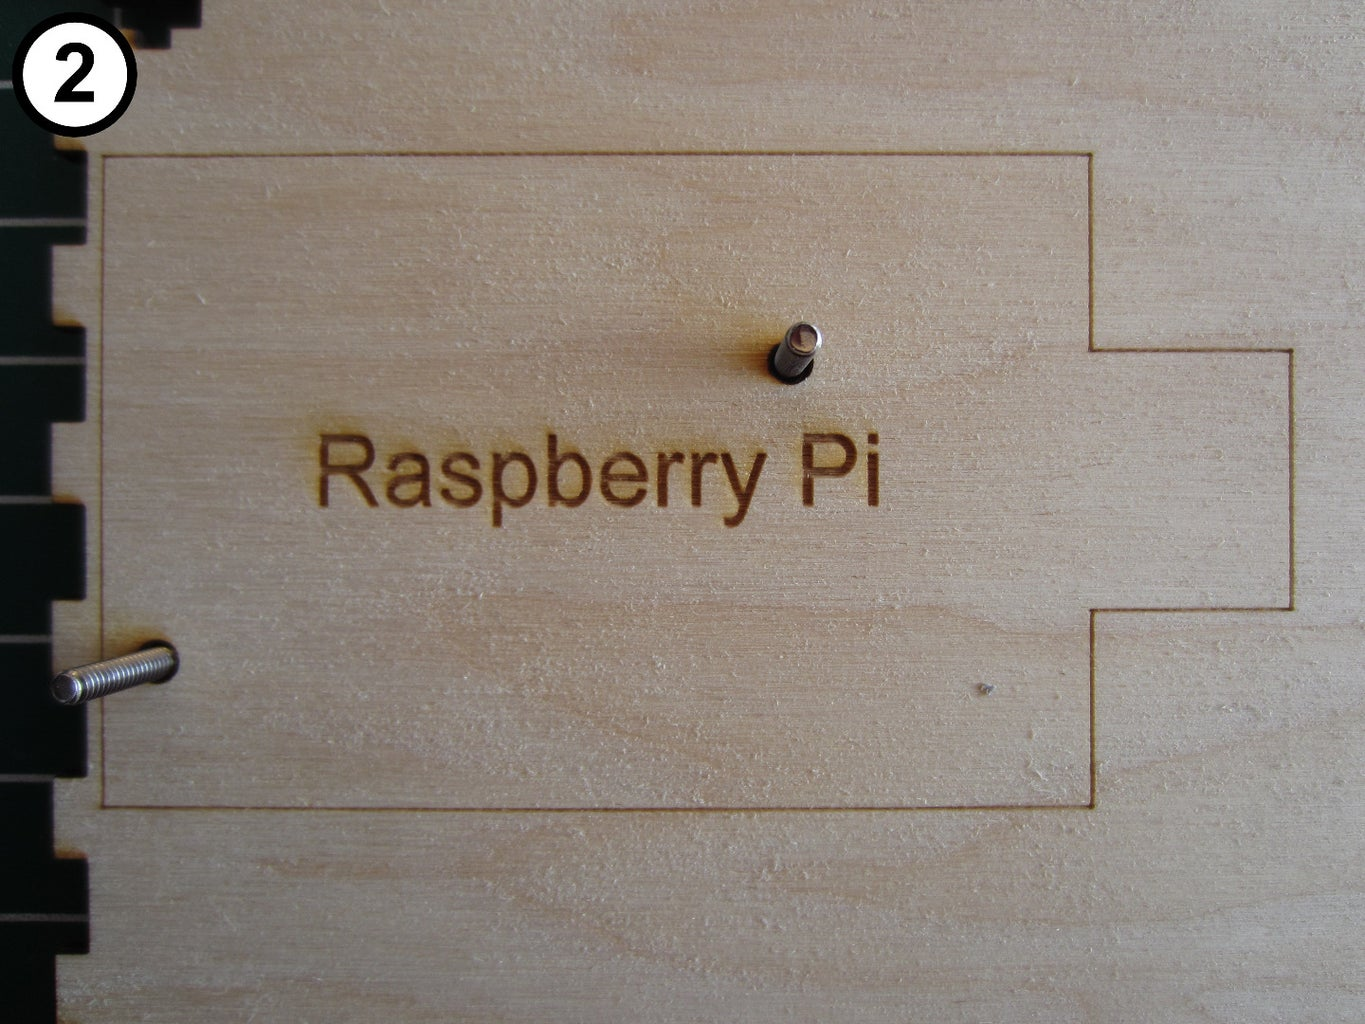 Attach the Raspberry Pi to the Bottom Panel